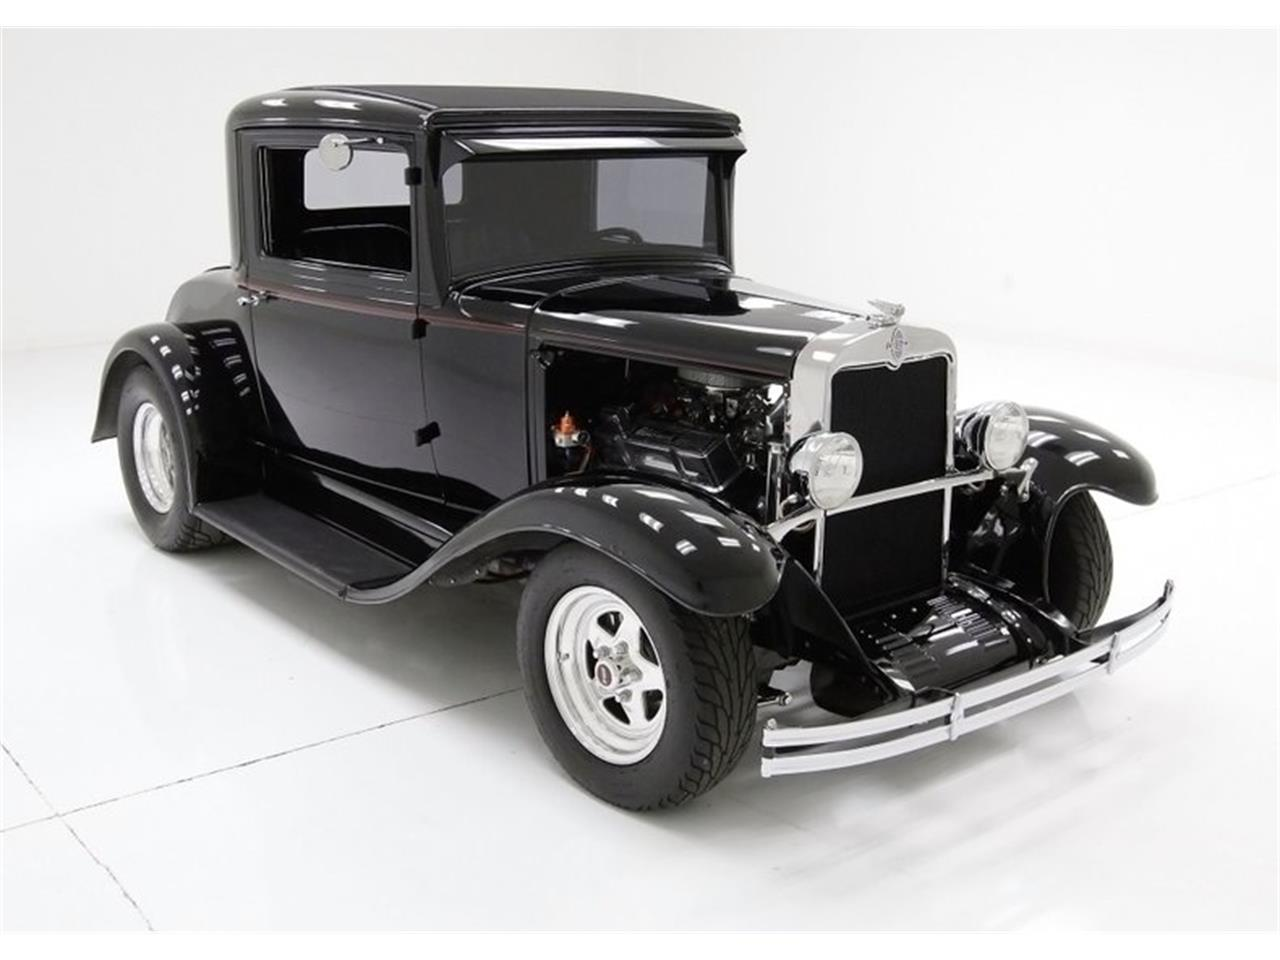 1930 Chevrolet 3-Window Coupe for sale in Morgantown, PA – photo 10